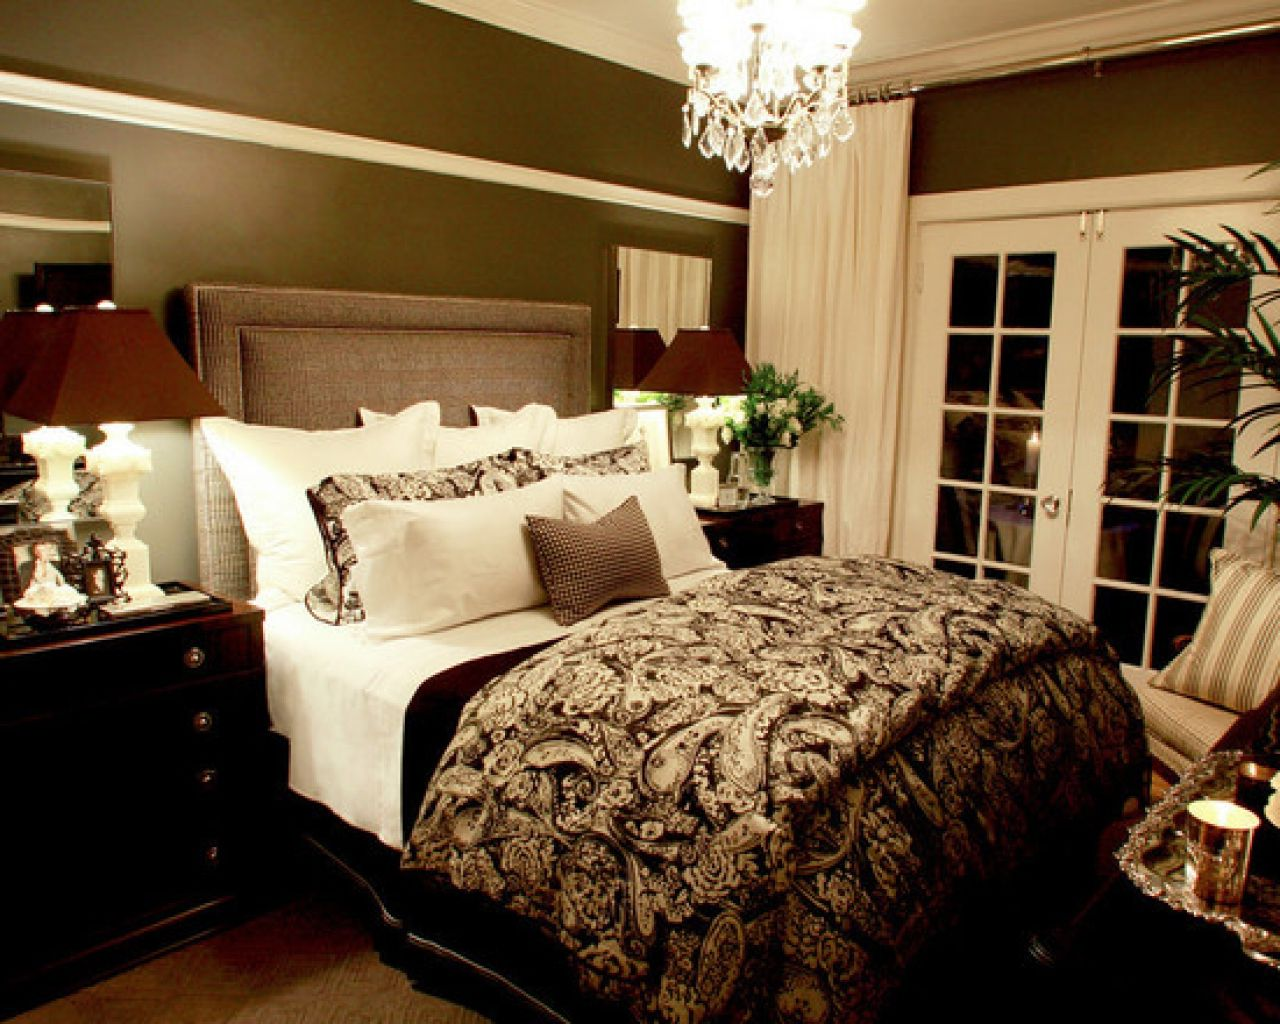 Apply Romantic Bedroom Ideas for